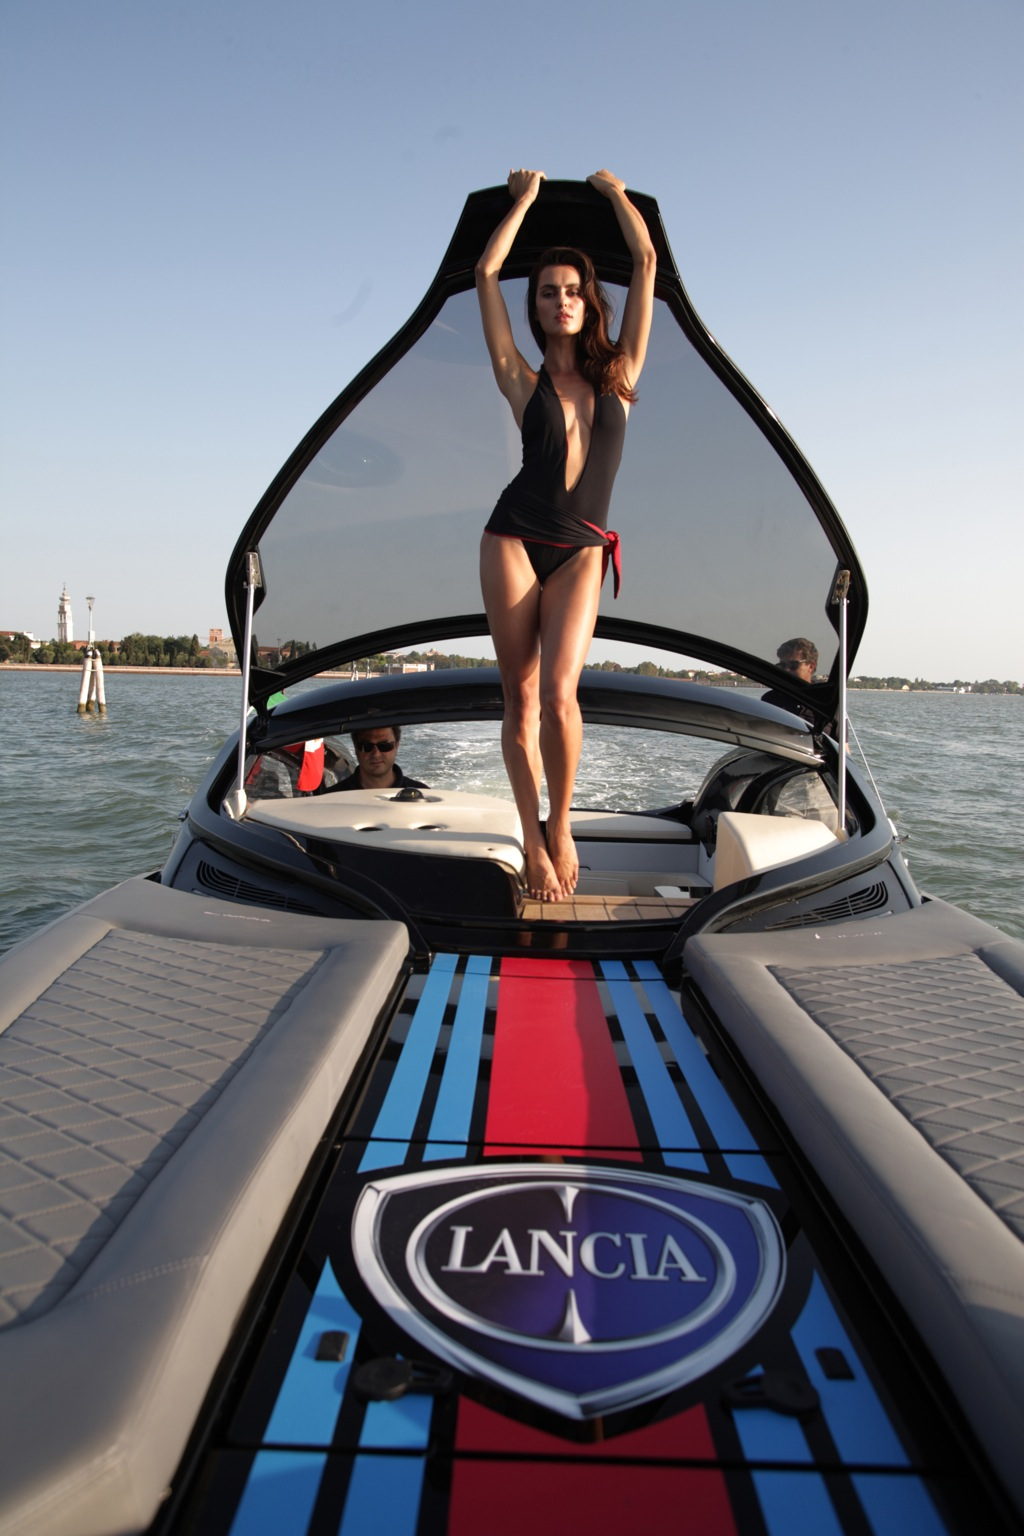 Cabin bathroom lighting - The Lancia Powerboat Launched In Venice Autoevolution